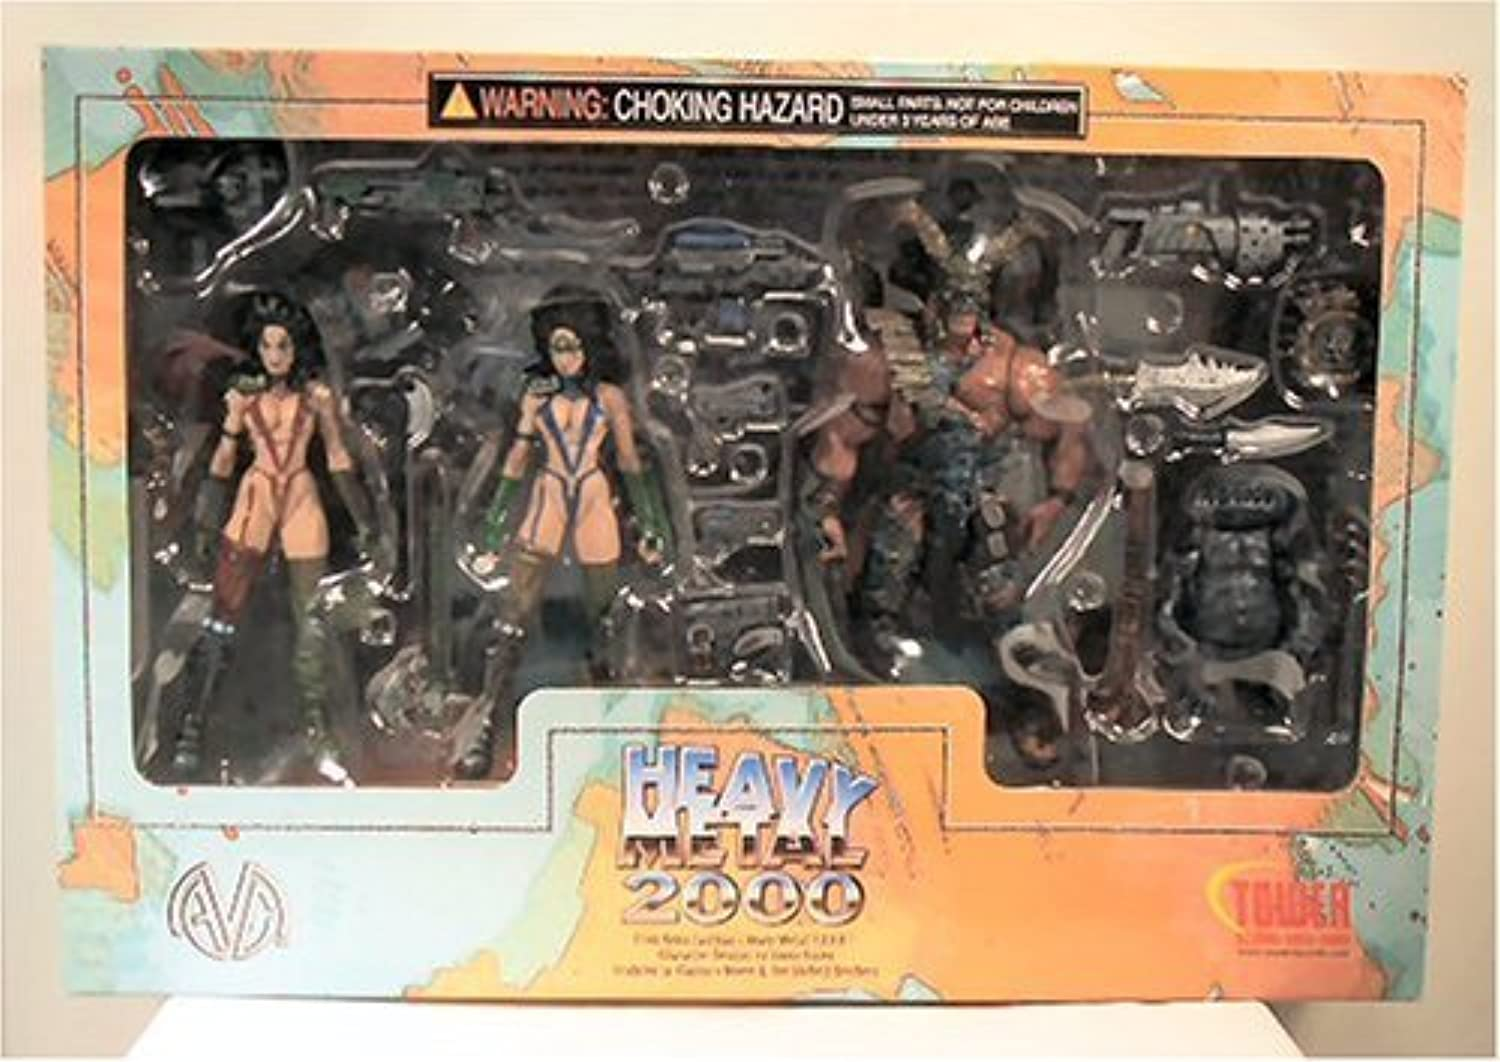 Heavy Metal 2000 FAKK 2 Tower Record Exclusive 4 Pack 6  Action Figures Julie Strain by Moore Action Collectibles, Inc.